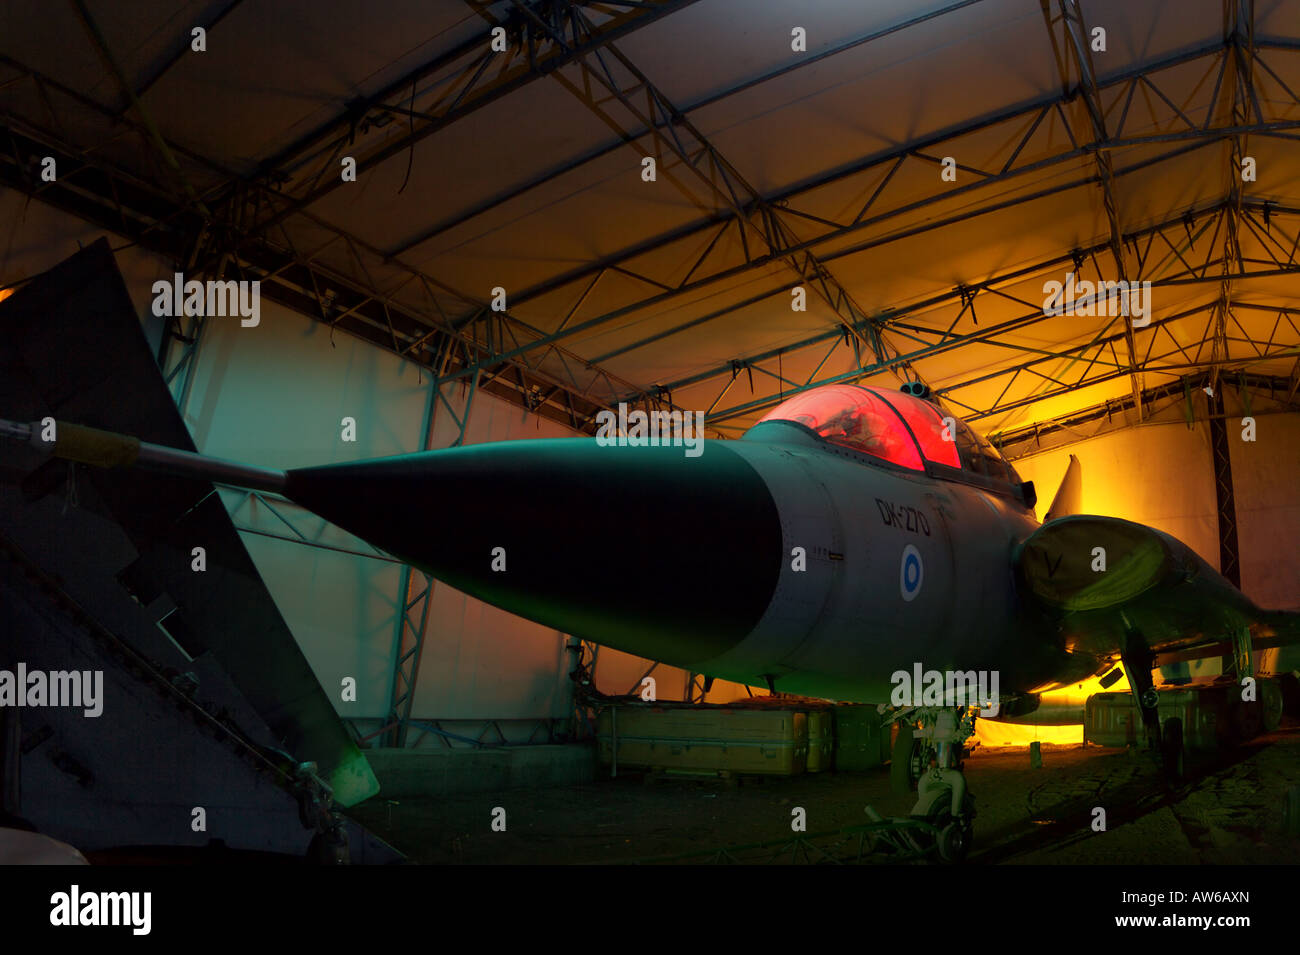 Permanently grounded fighter plane in hangar Stock Photo